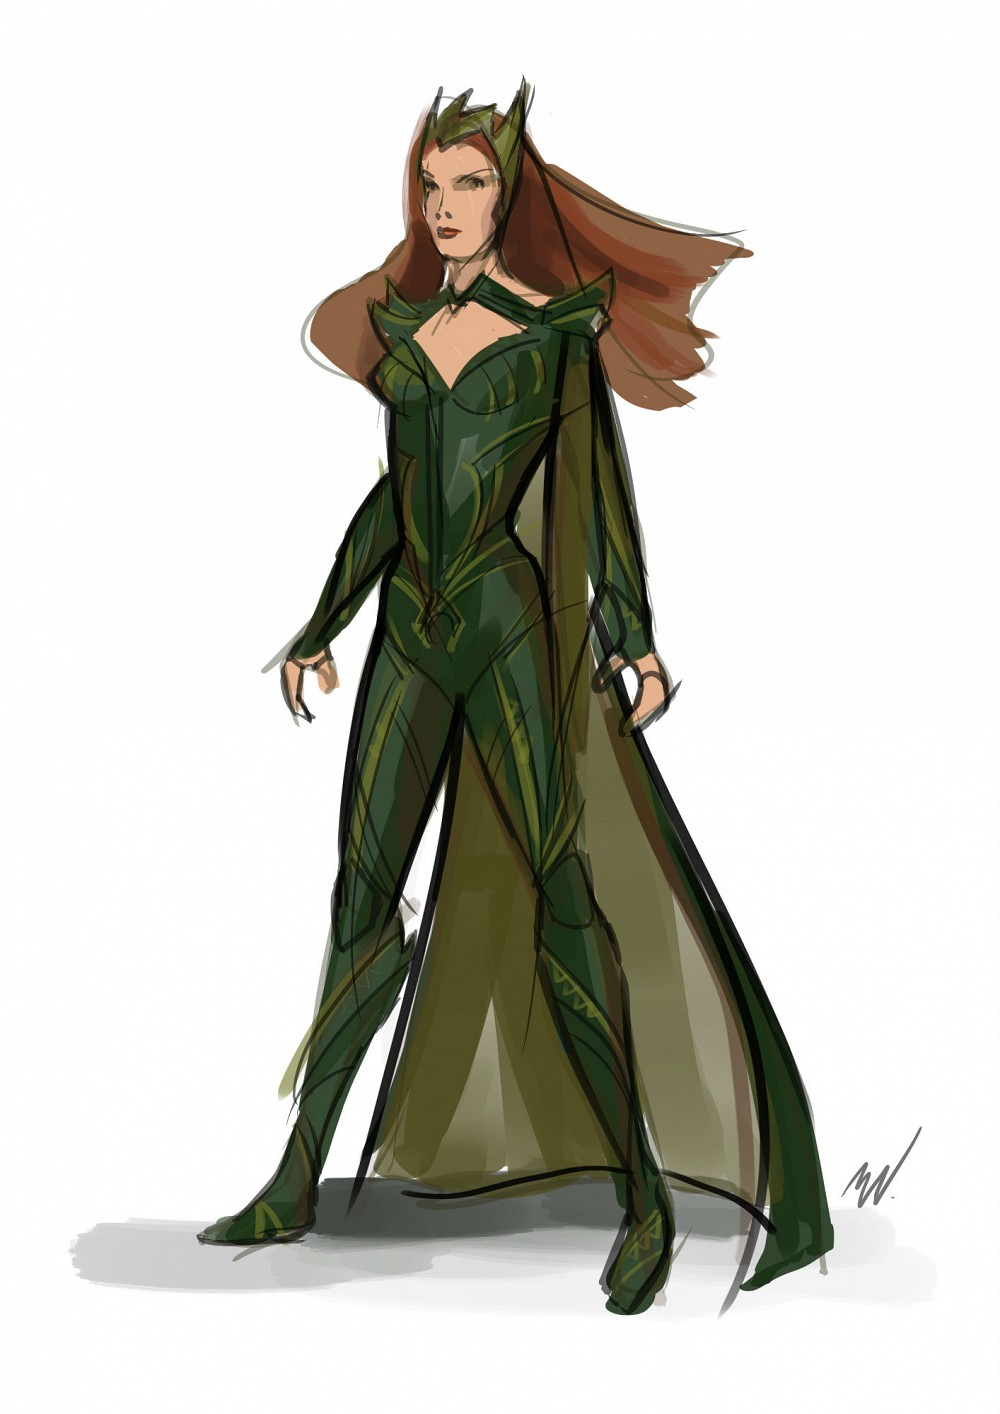 justice-league-mera-sketch